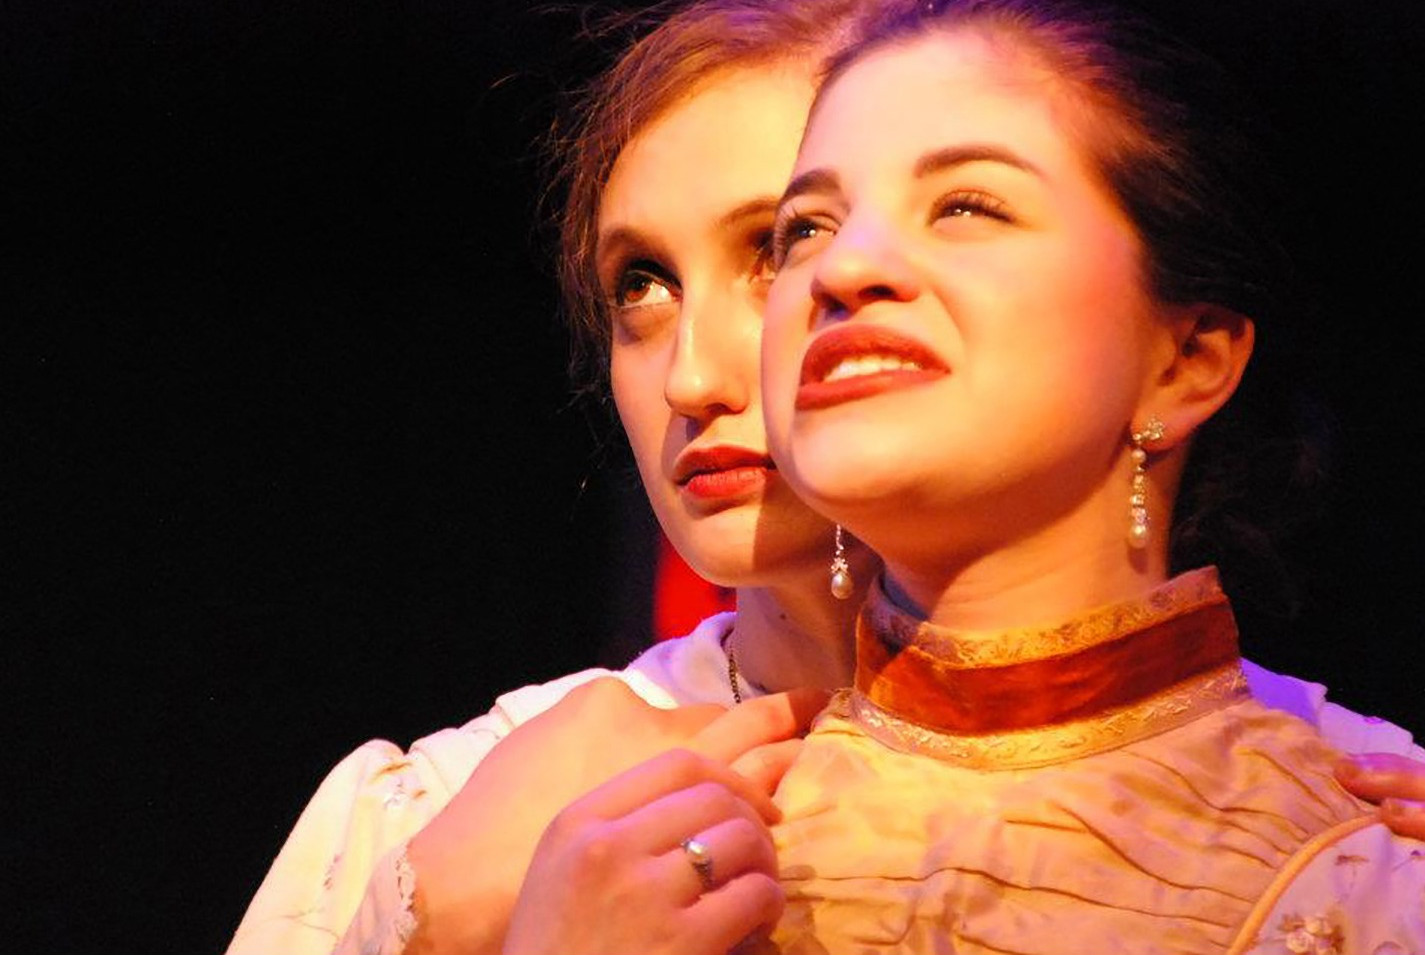 Varya in The Cherry Orchard